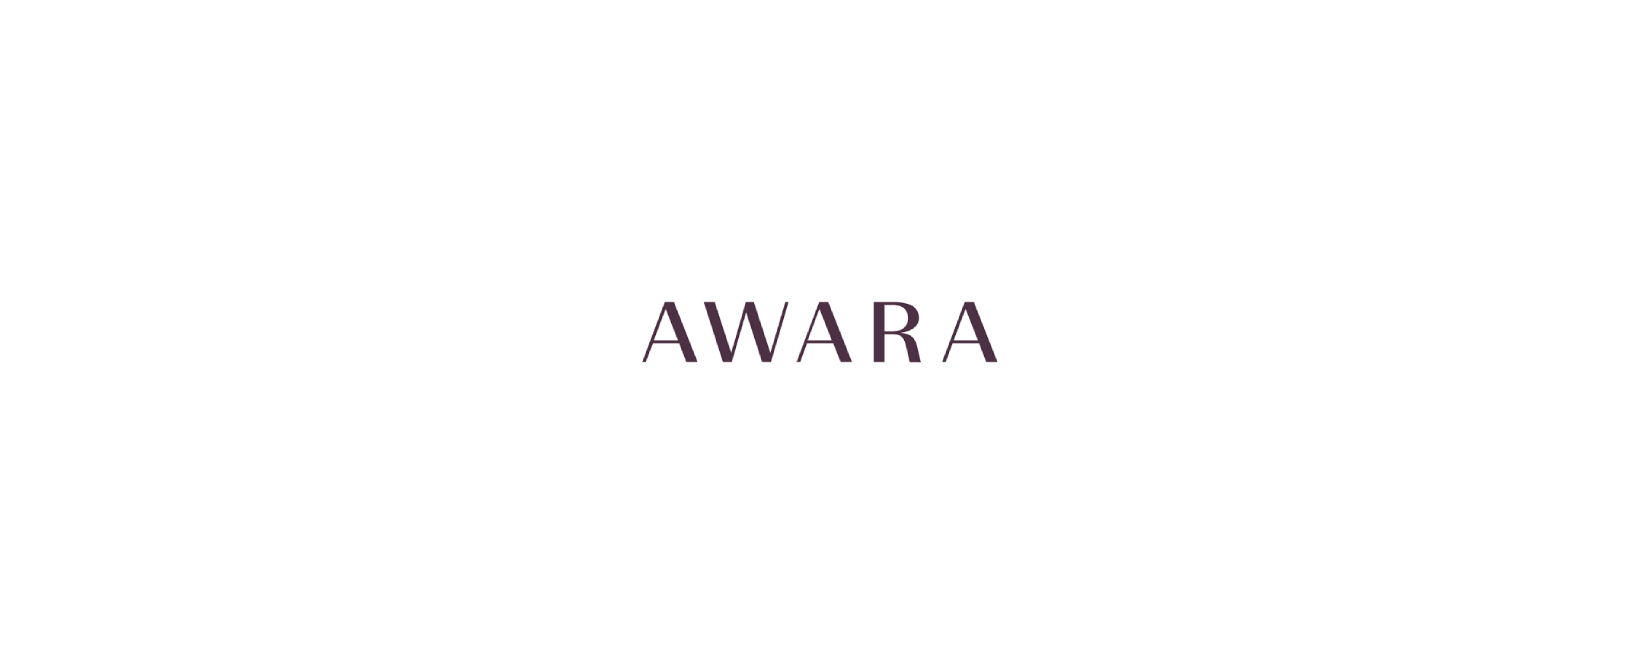 AWARA Review – Celebrate Your Peaceful Sleep! Biggest Offer Ever!